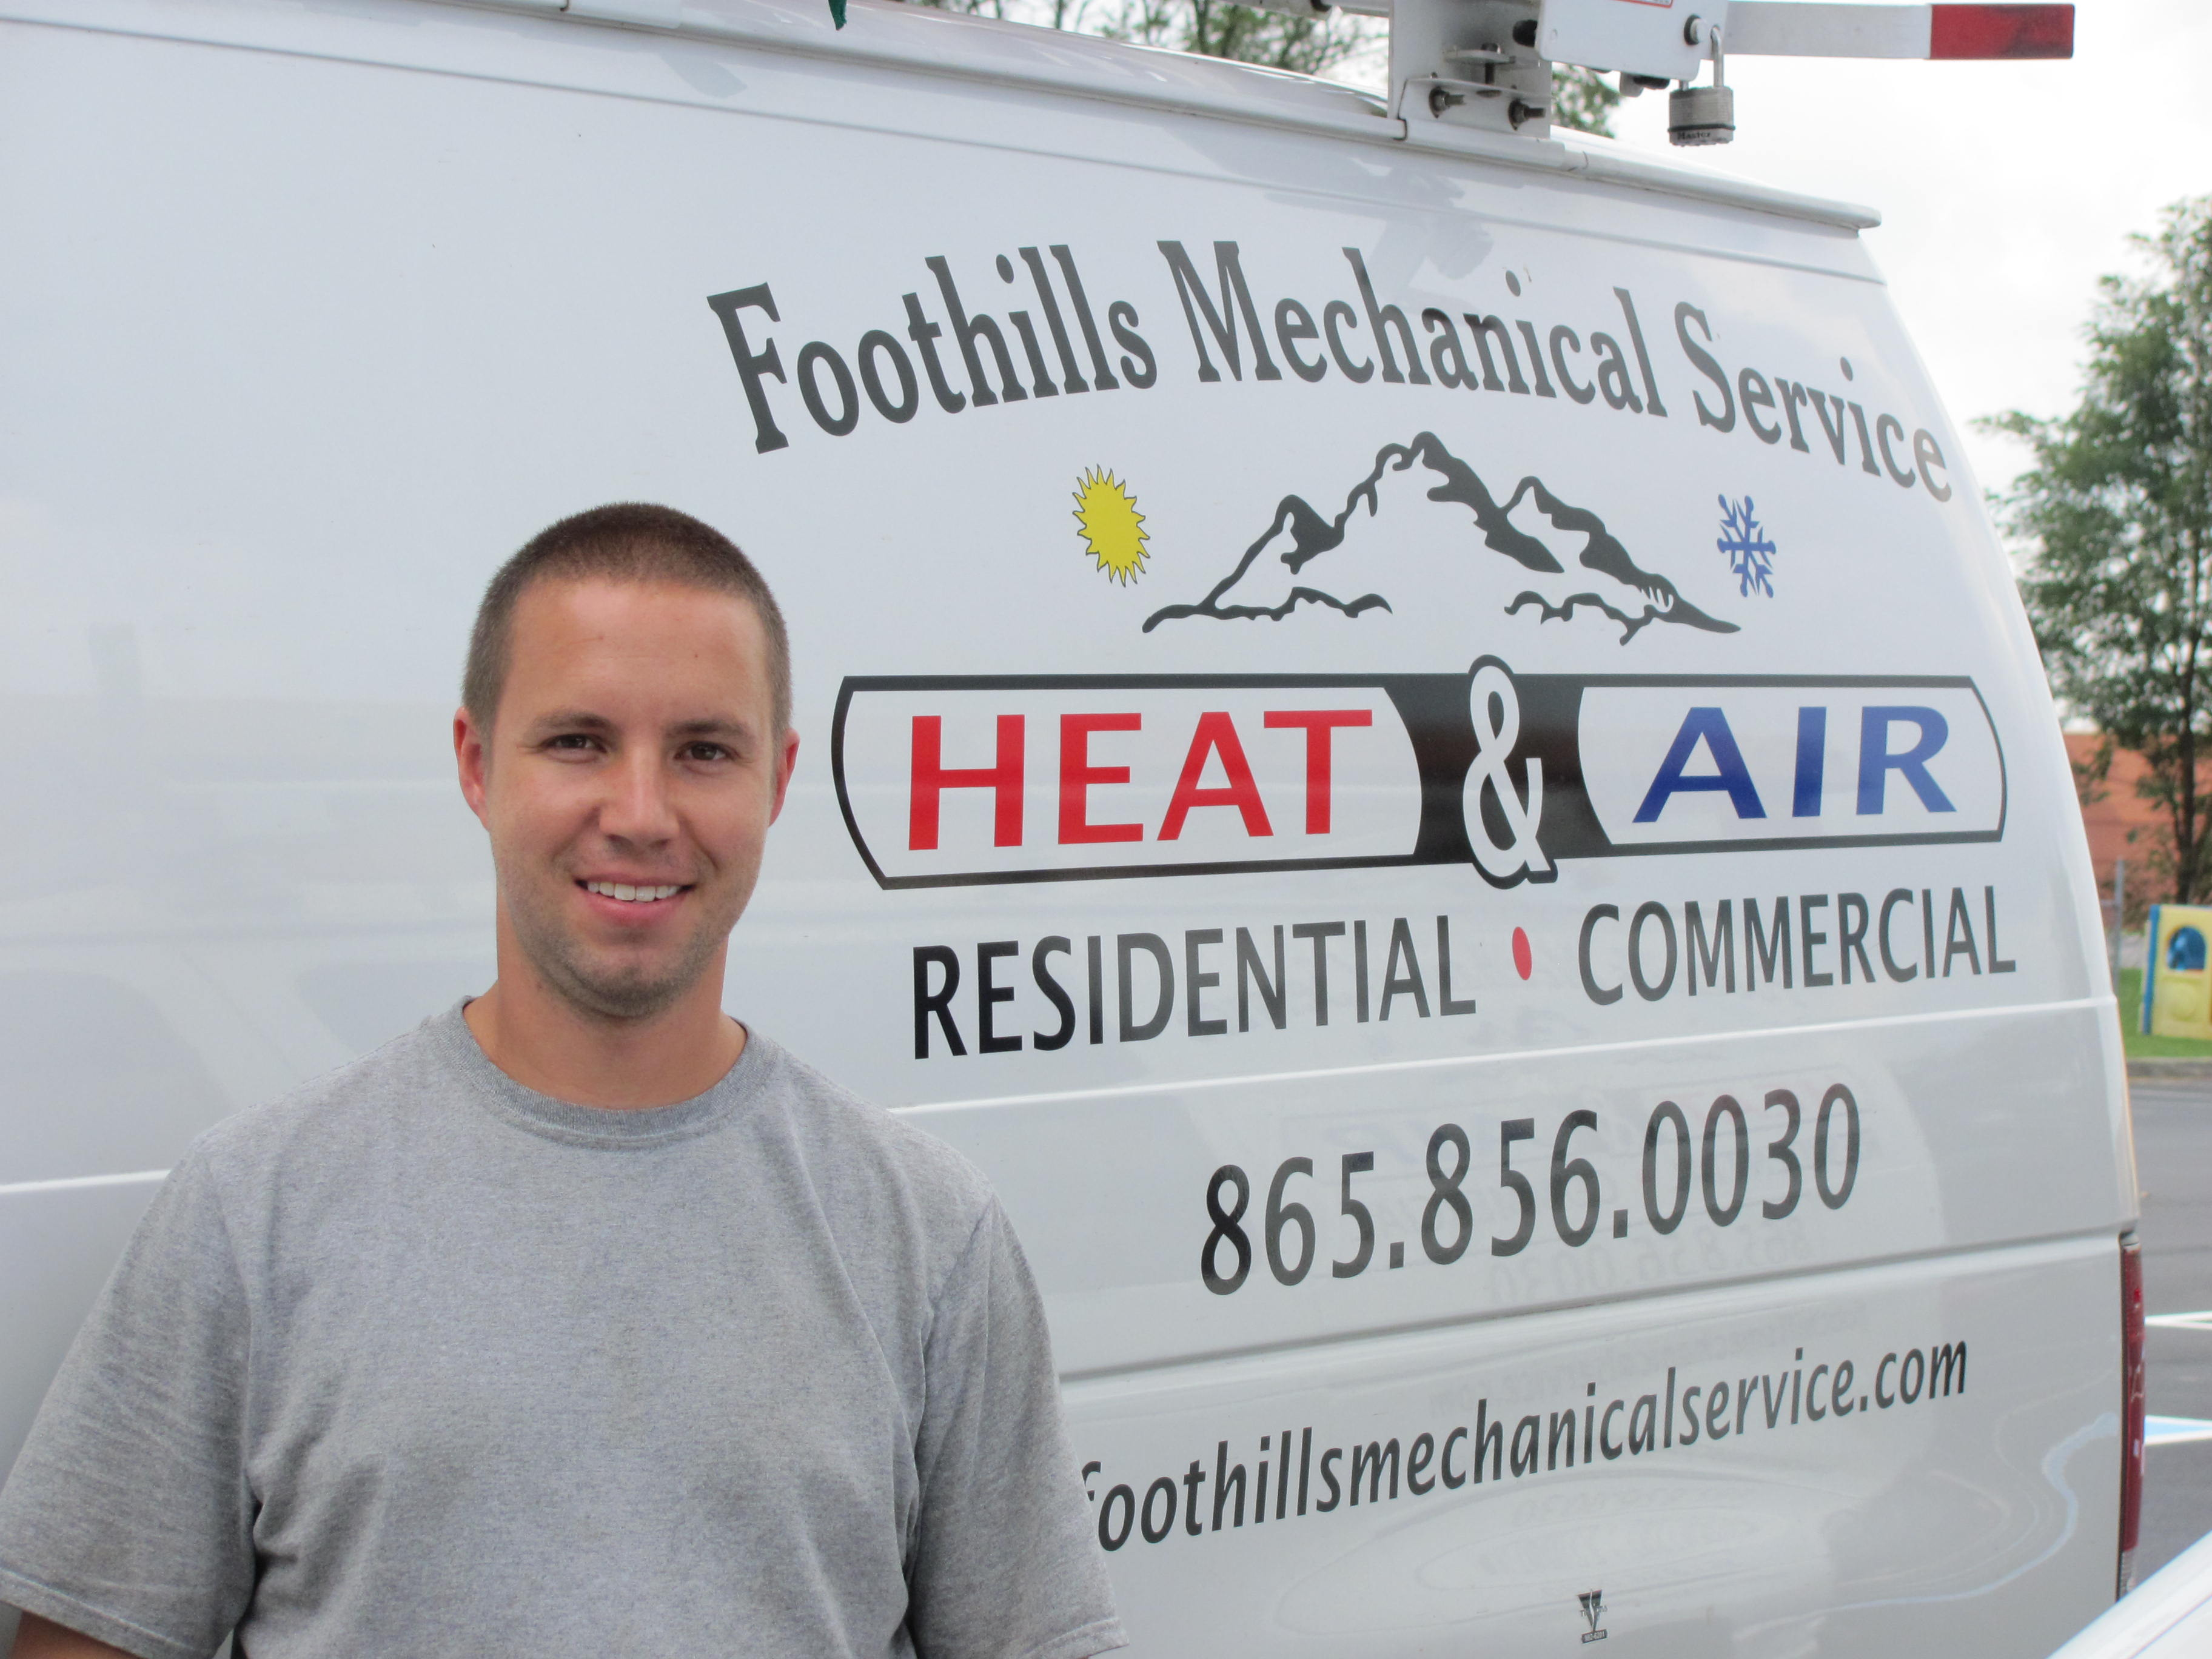 Foothills Mechanical Service image 3